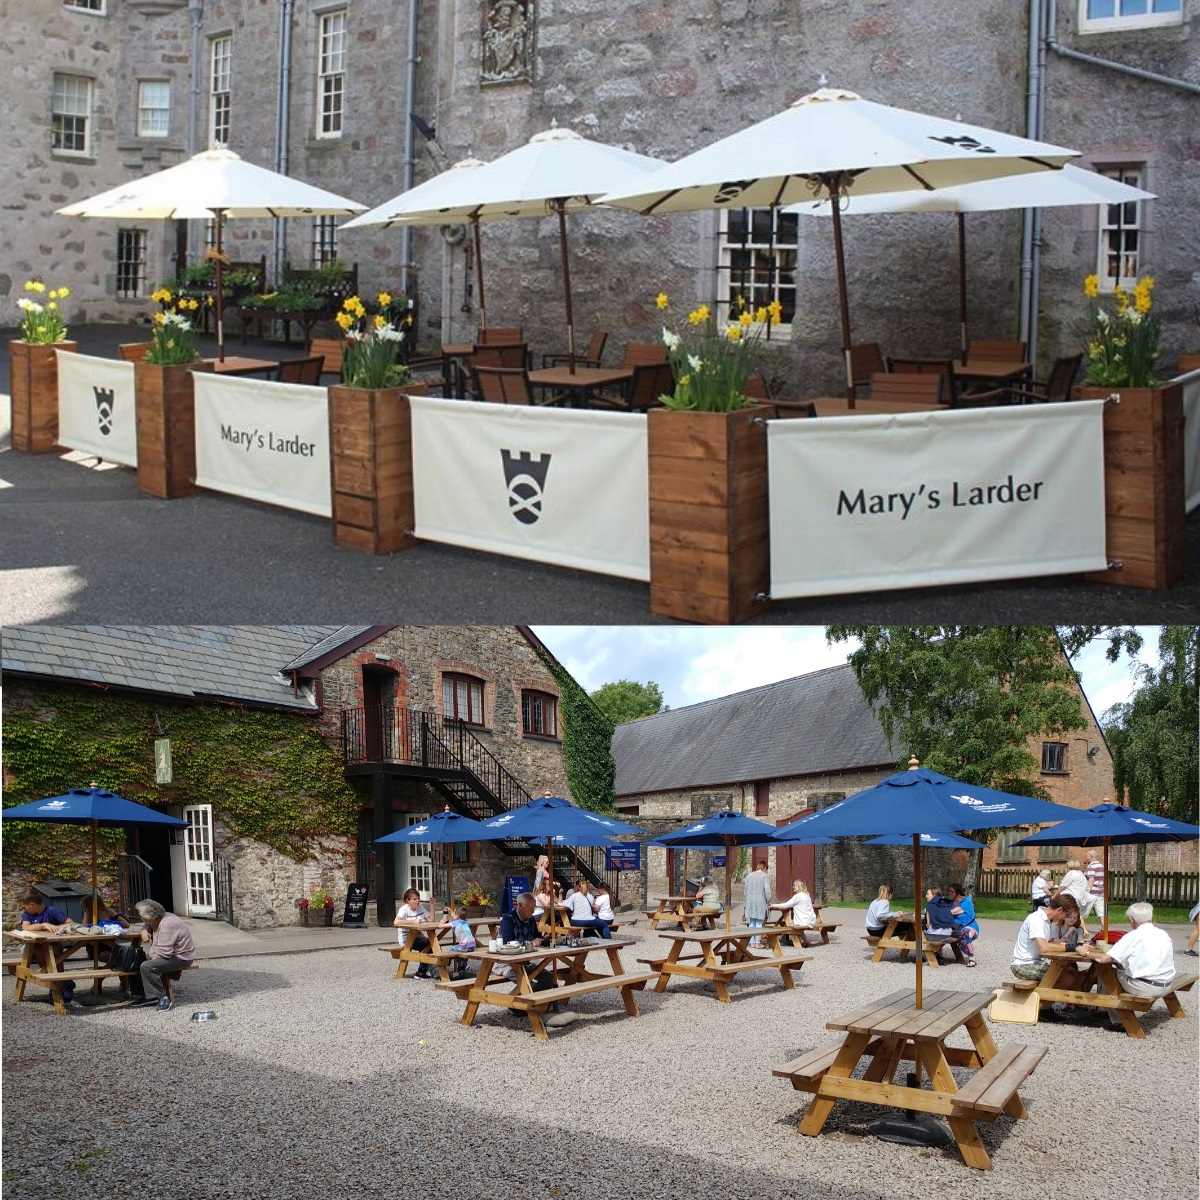 Showing branded parasols, planters and barriers at National trust scotland and picnic benches and parasols at national trust wales